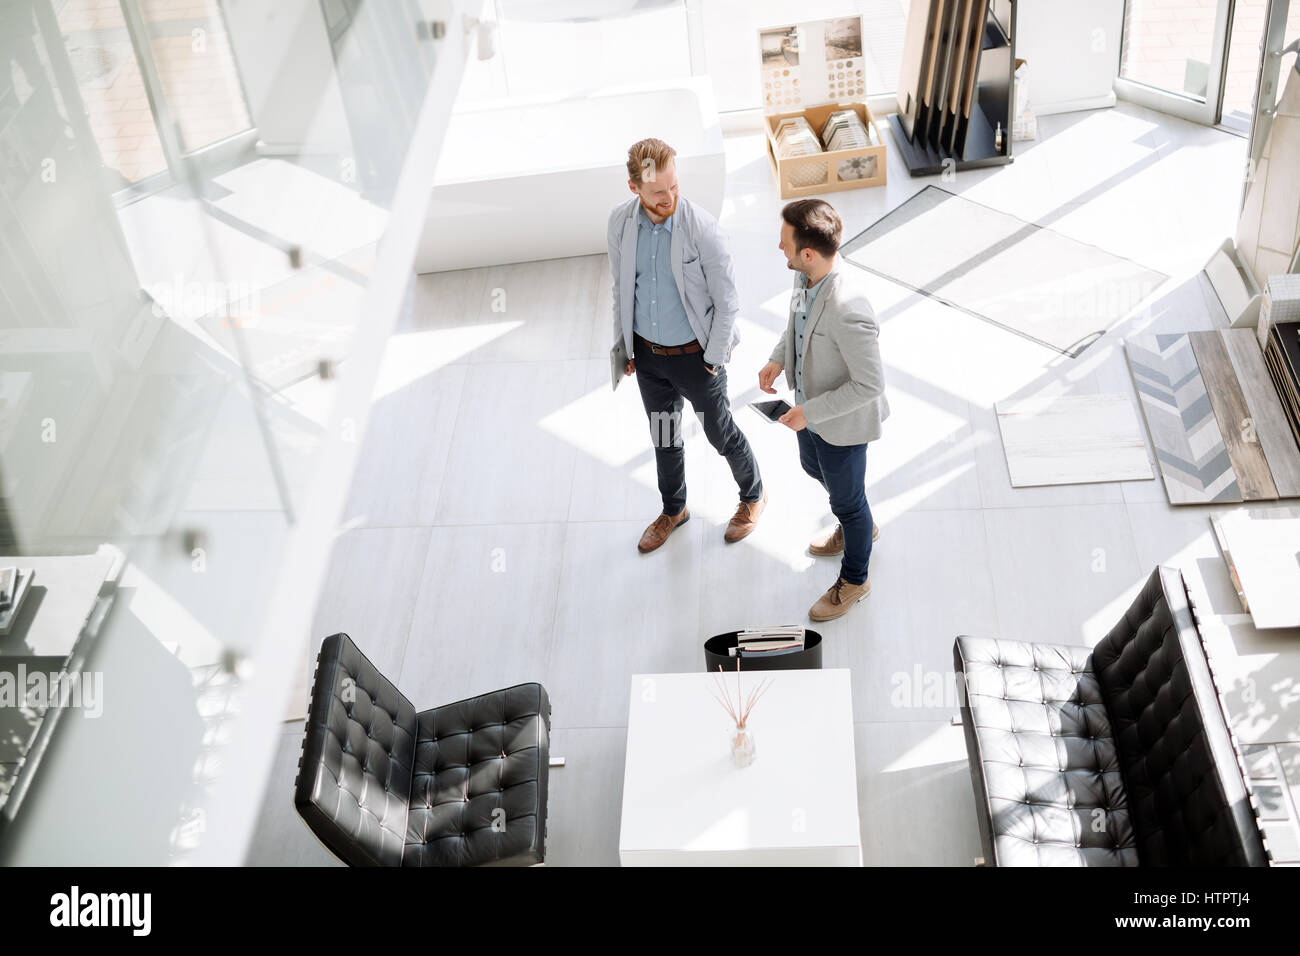 Two customers entering interior design store - Stock Image